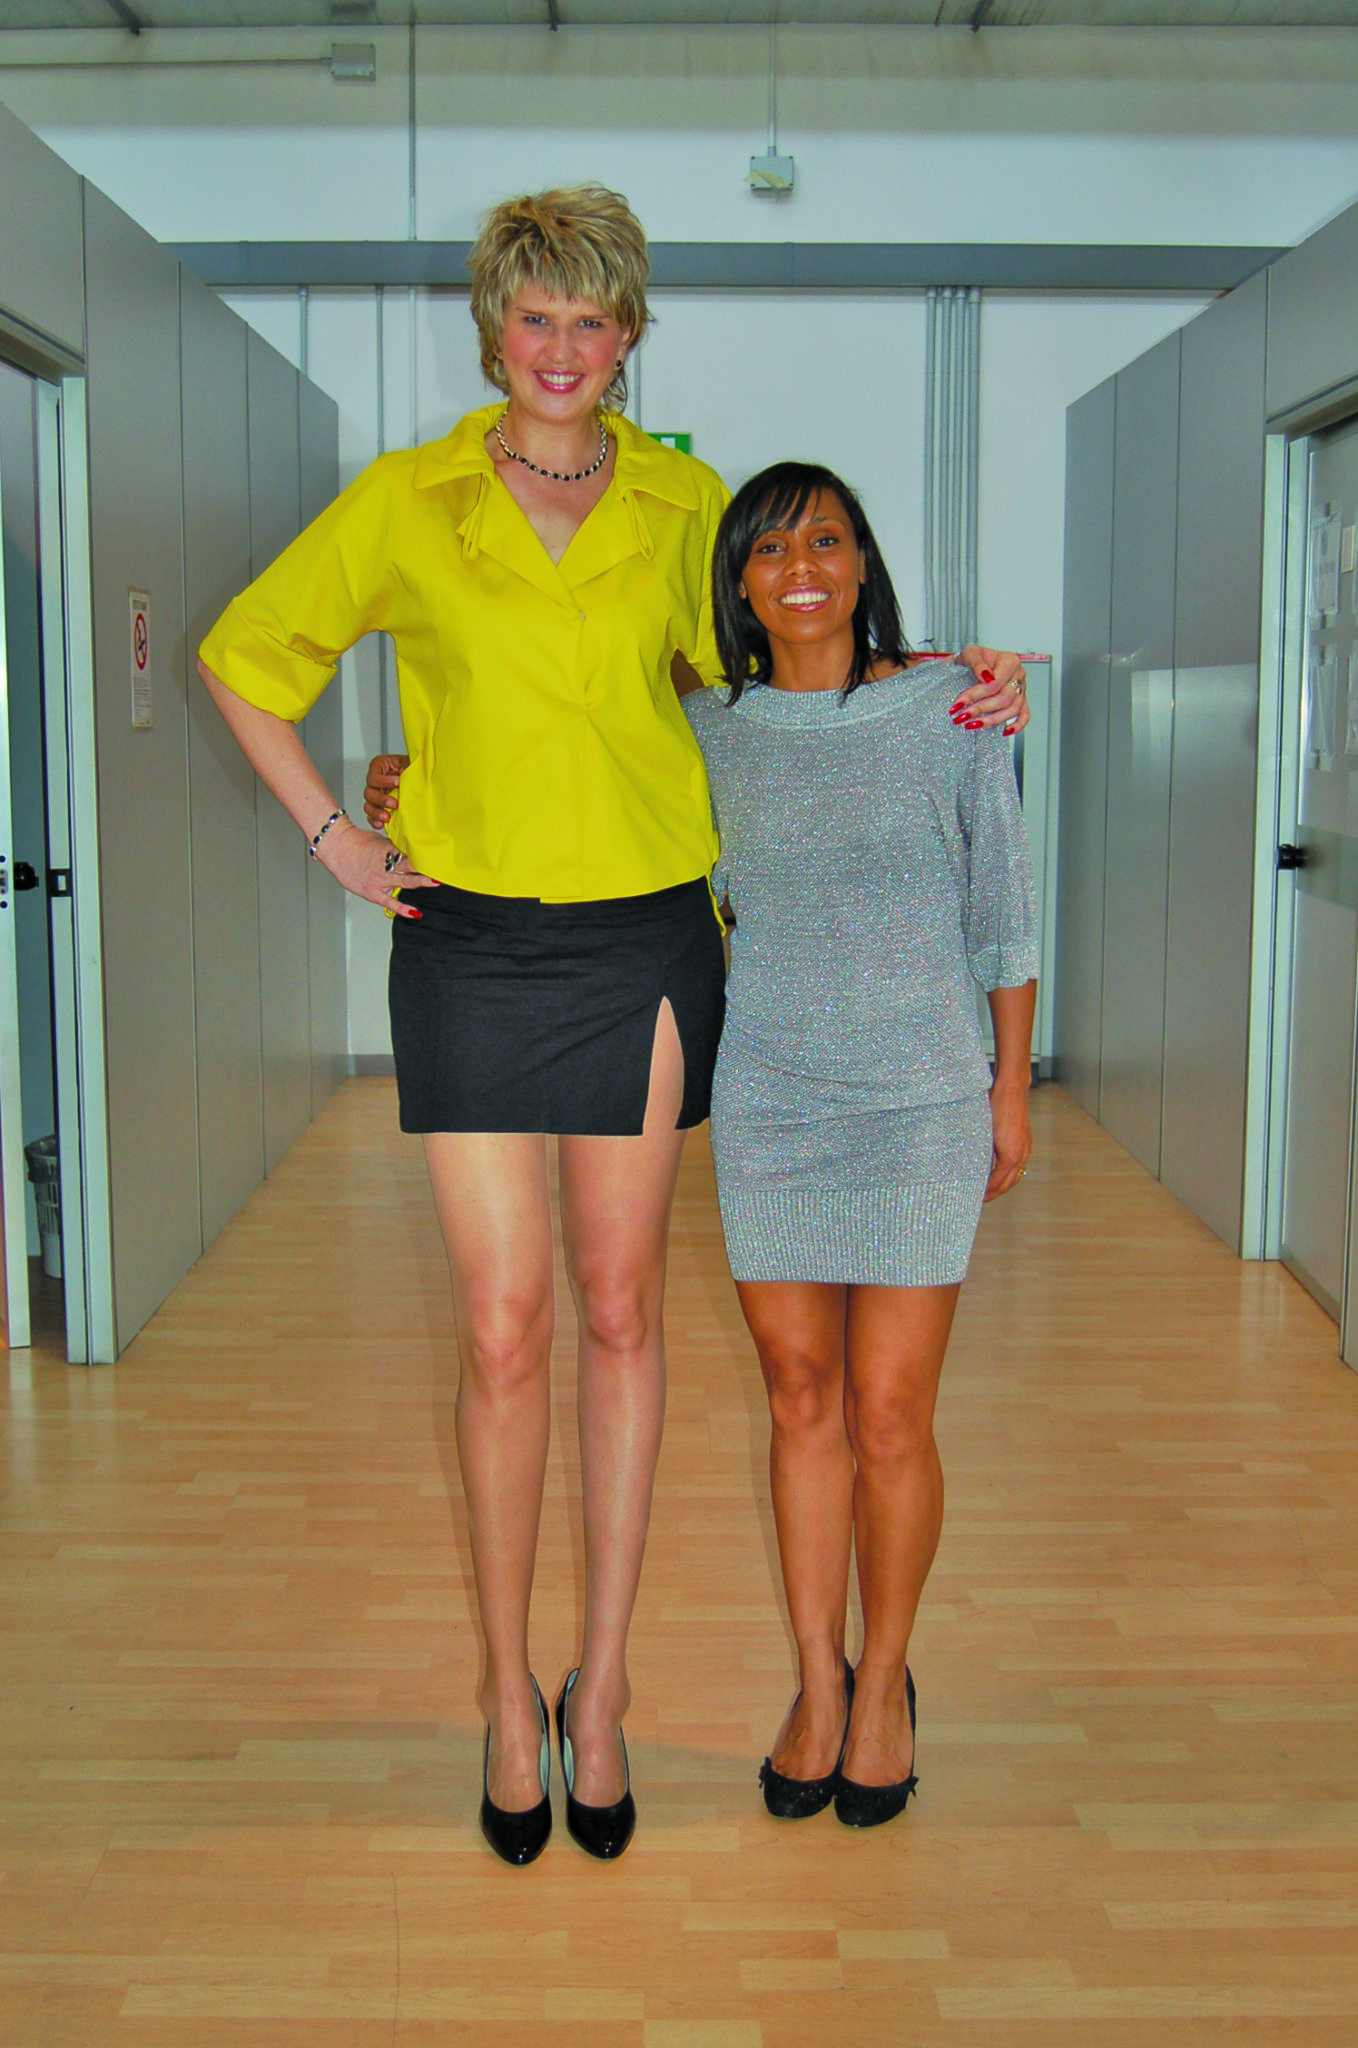 Falls Church's Svetlana Pankratova holds the Guinness Book world records for longest legs, measured at four feet, four inches long.  (Courtesy Photos)